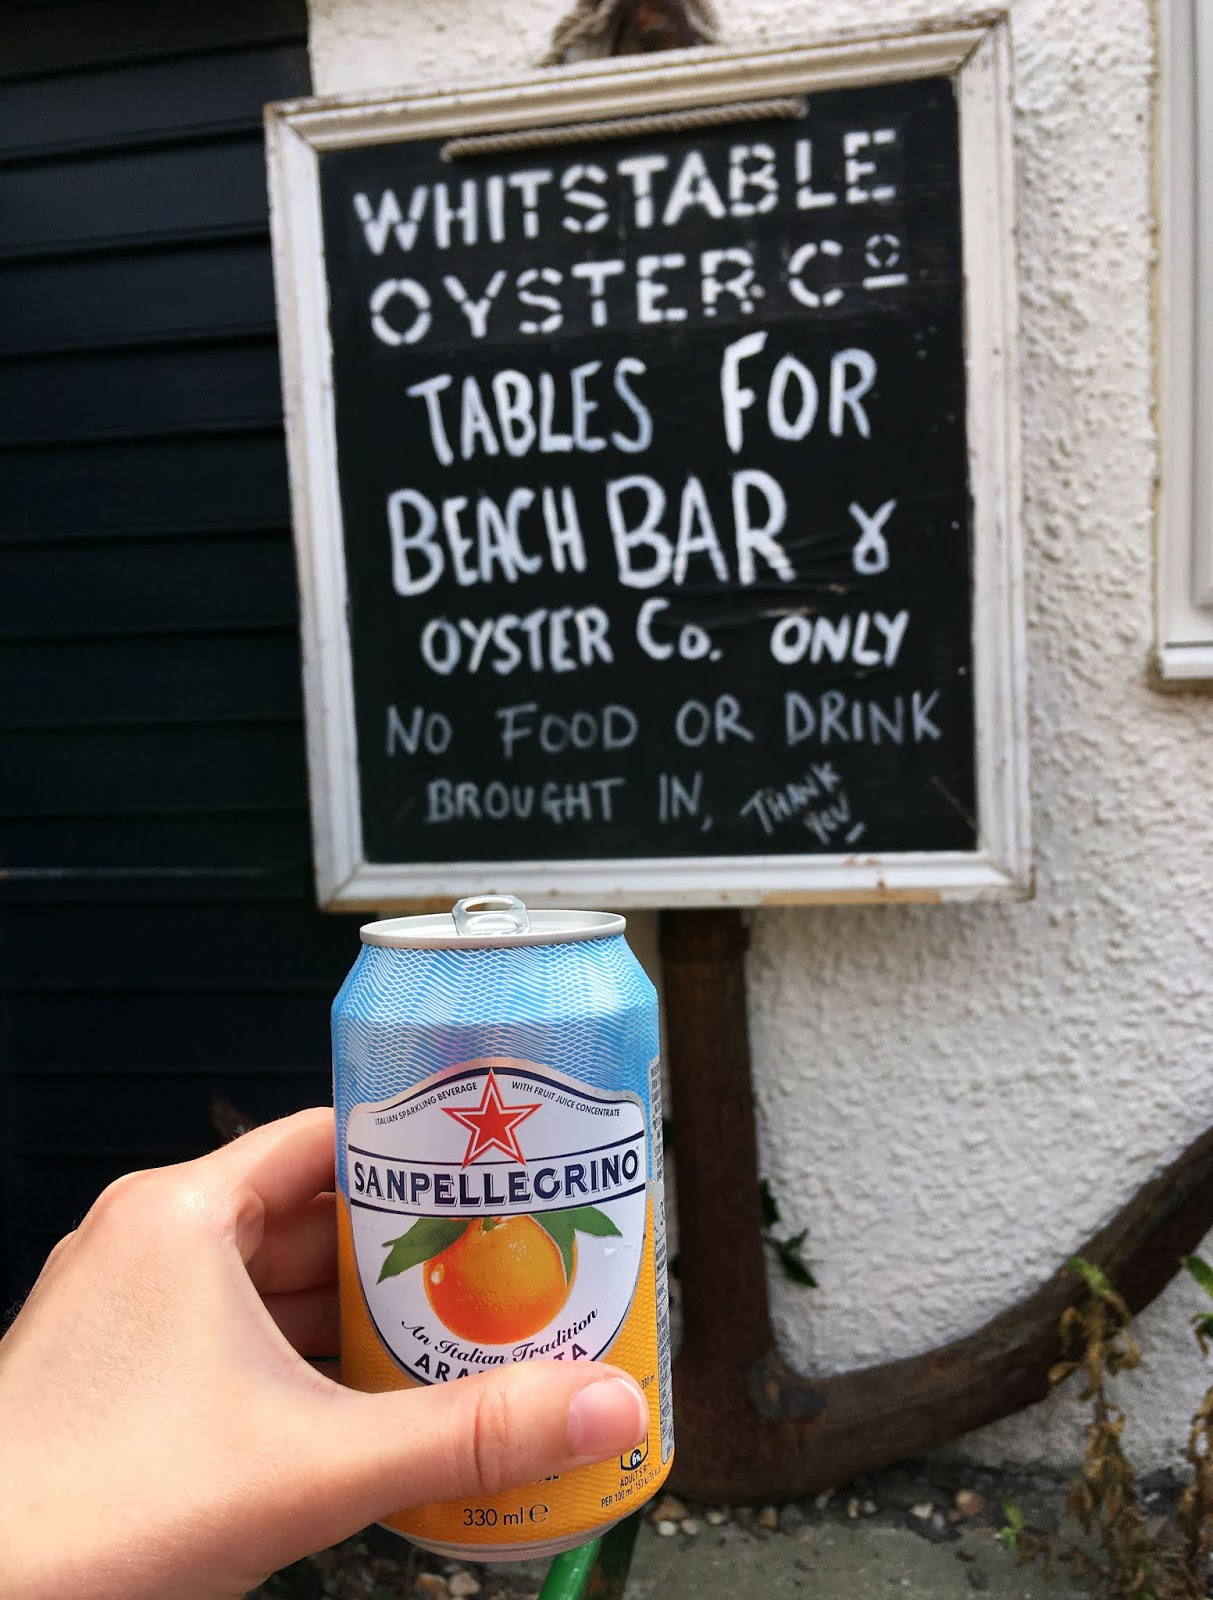 Having a San Pellegrino fizzy orange drink at the Whitstable Oyster Co. bar in Whitstable